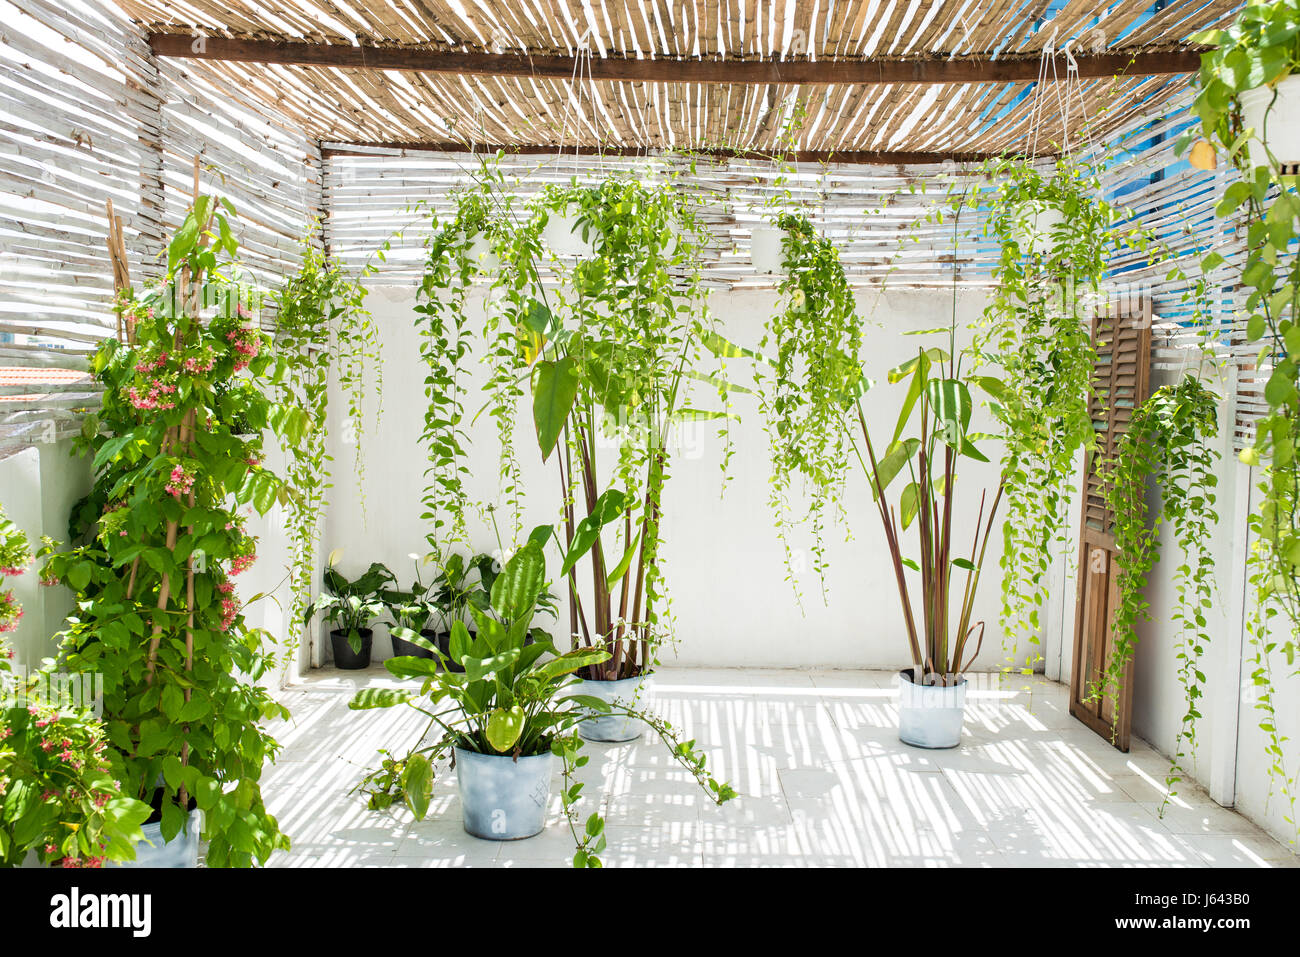 Garden on balcony with green plants at home. - Stock Image